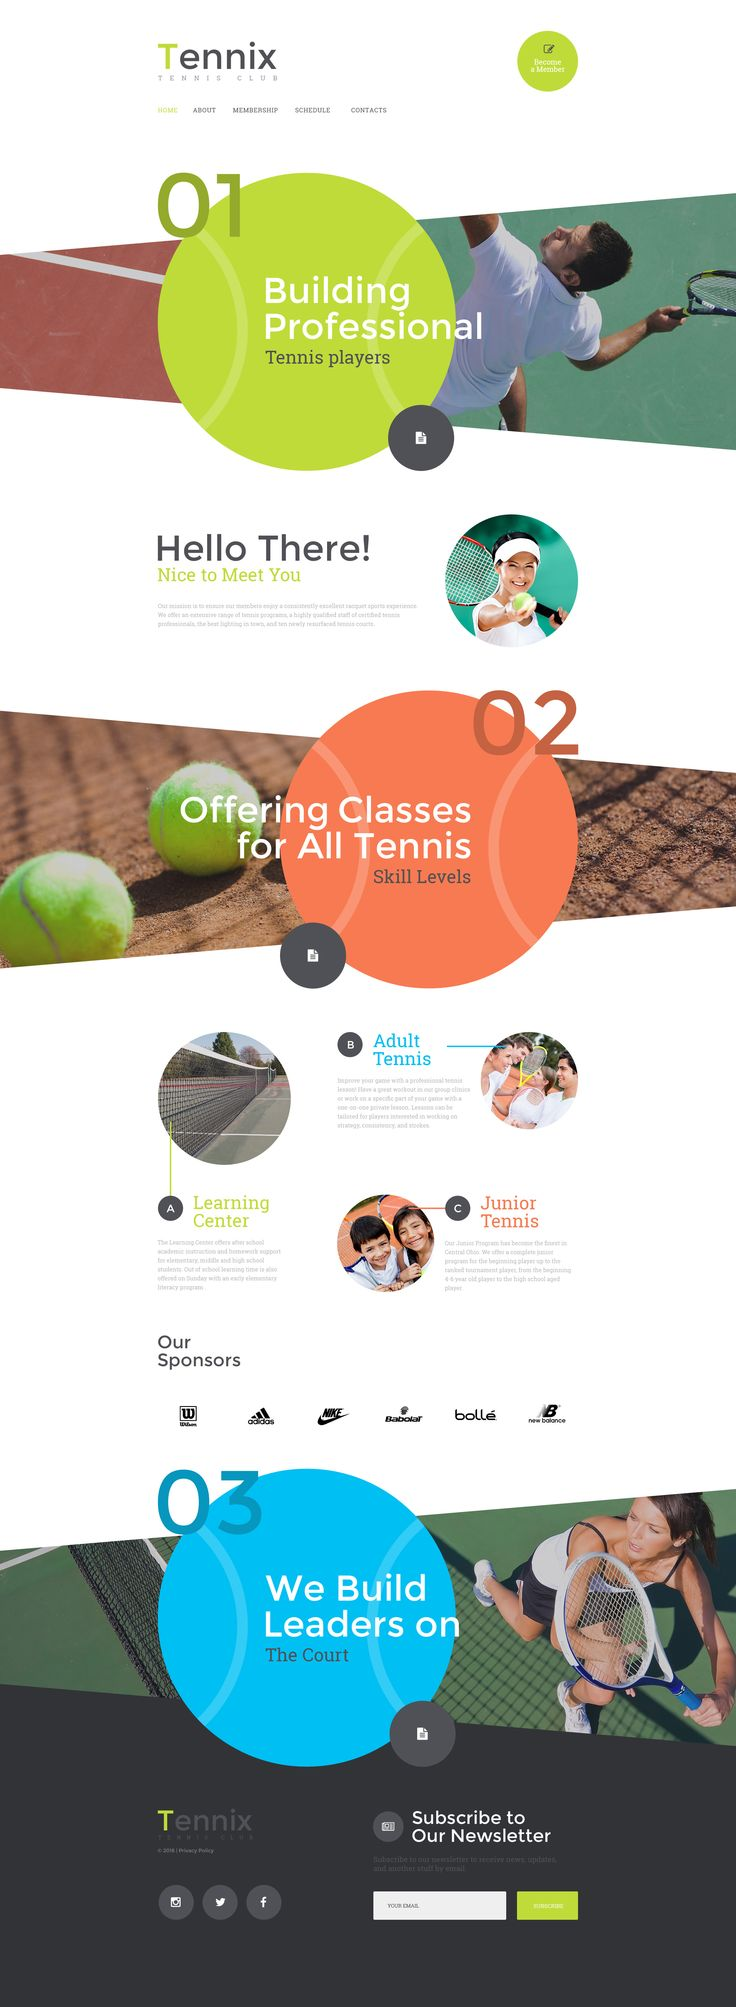 Tennis Website Template http://www.templatemonster.com/website-templates/tennix-website-template-57567.html #sport #html #html5